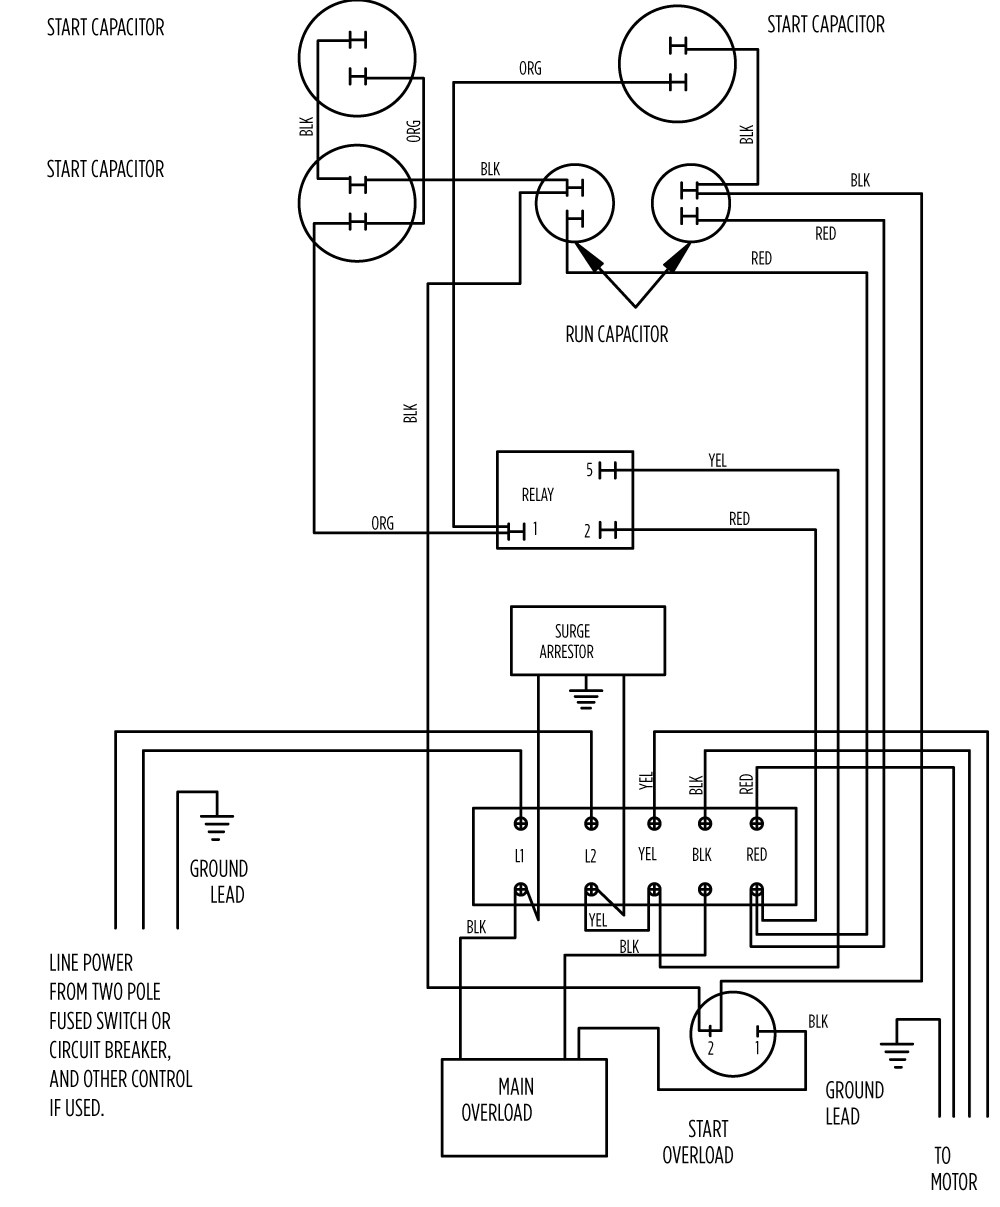 10 hp standard 282 202 9210 or 282 202 9230_aim gallery?format=jpg&quality=80 aim manual page 57 single phase motors and controls motor electric motor wiring diagrams at mifinder.co